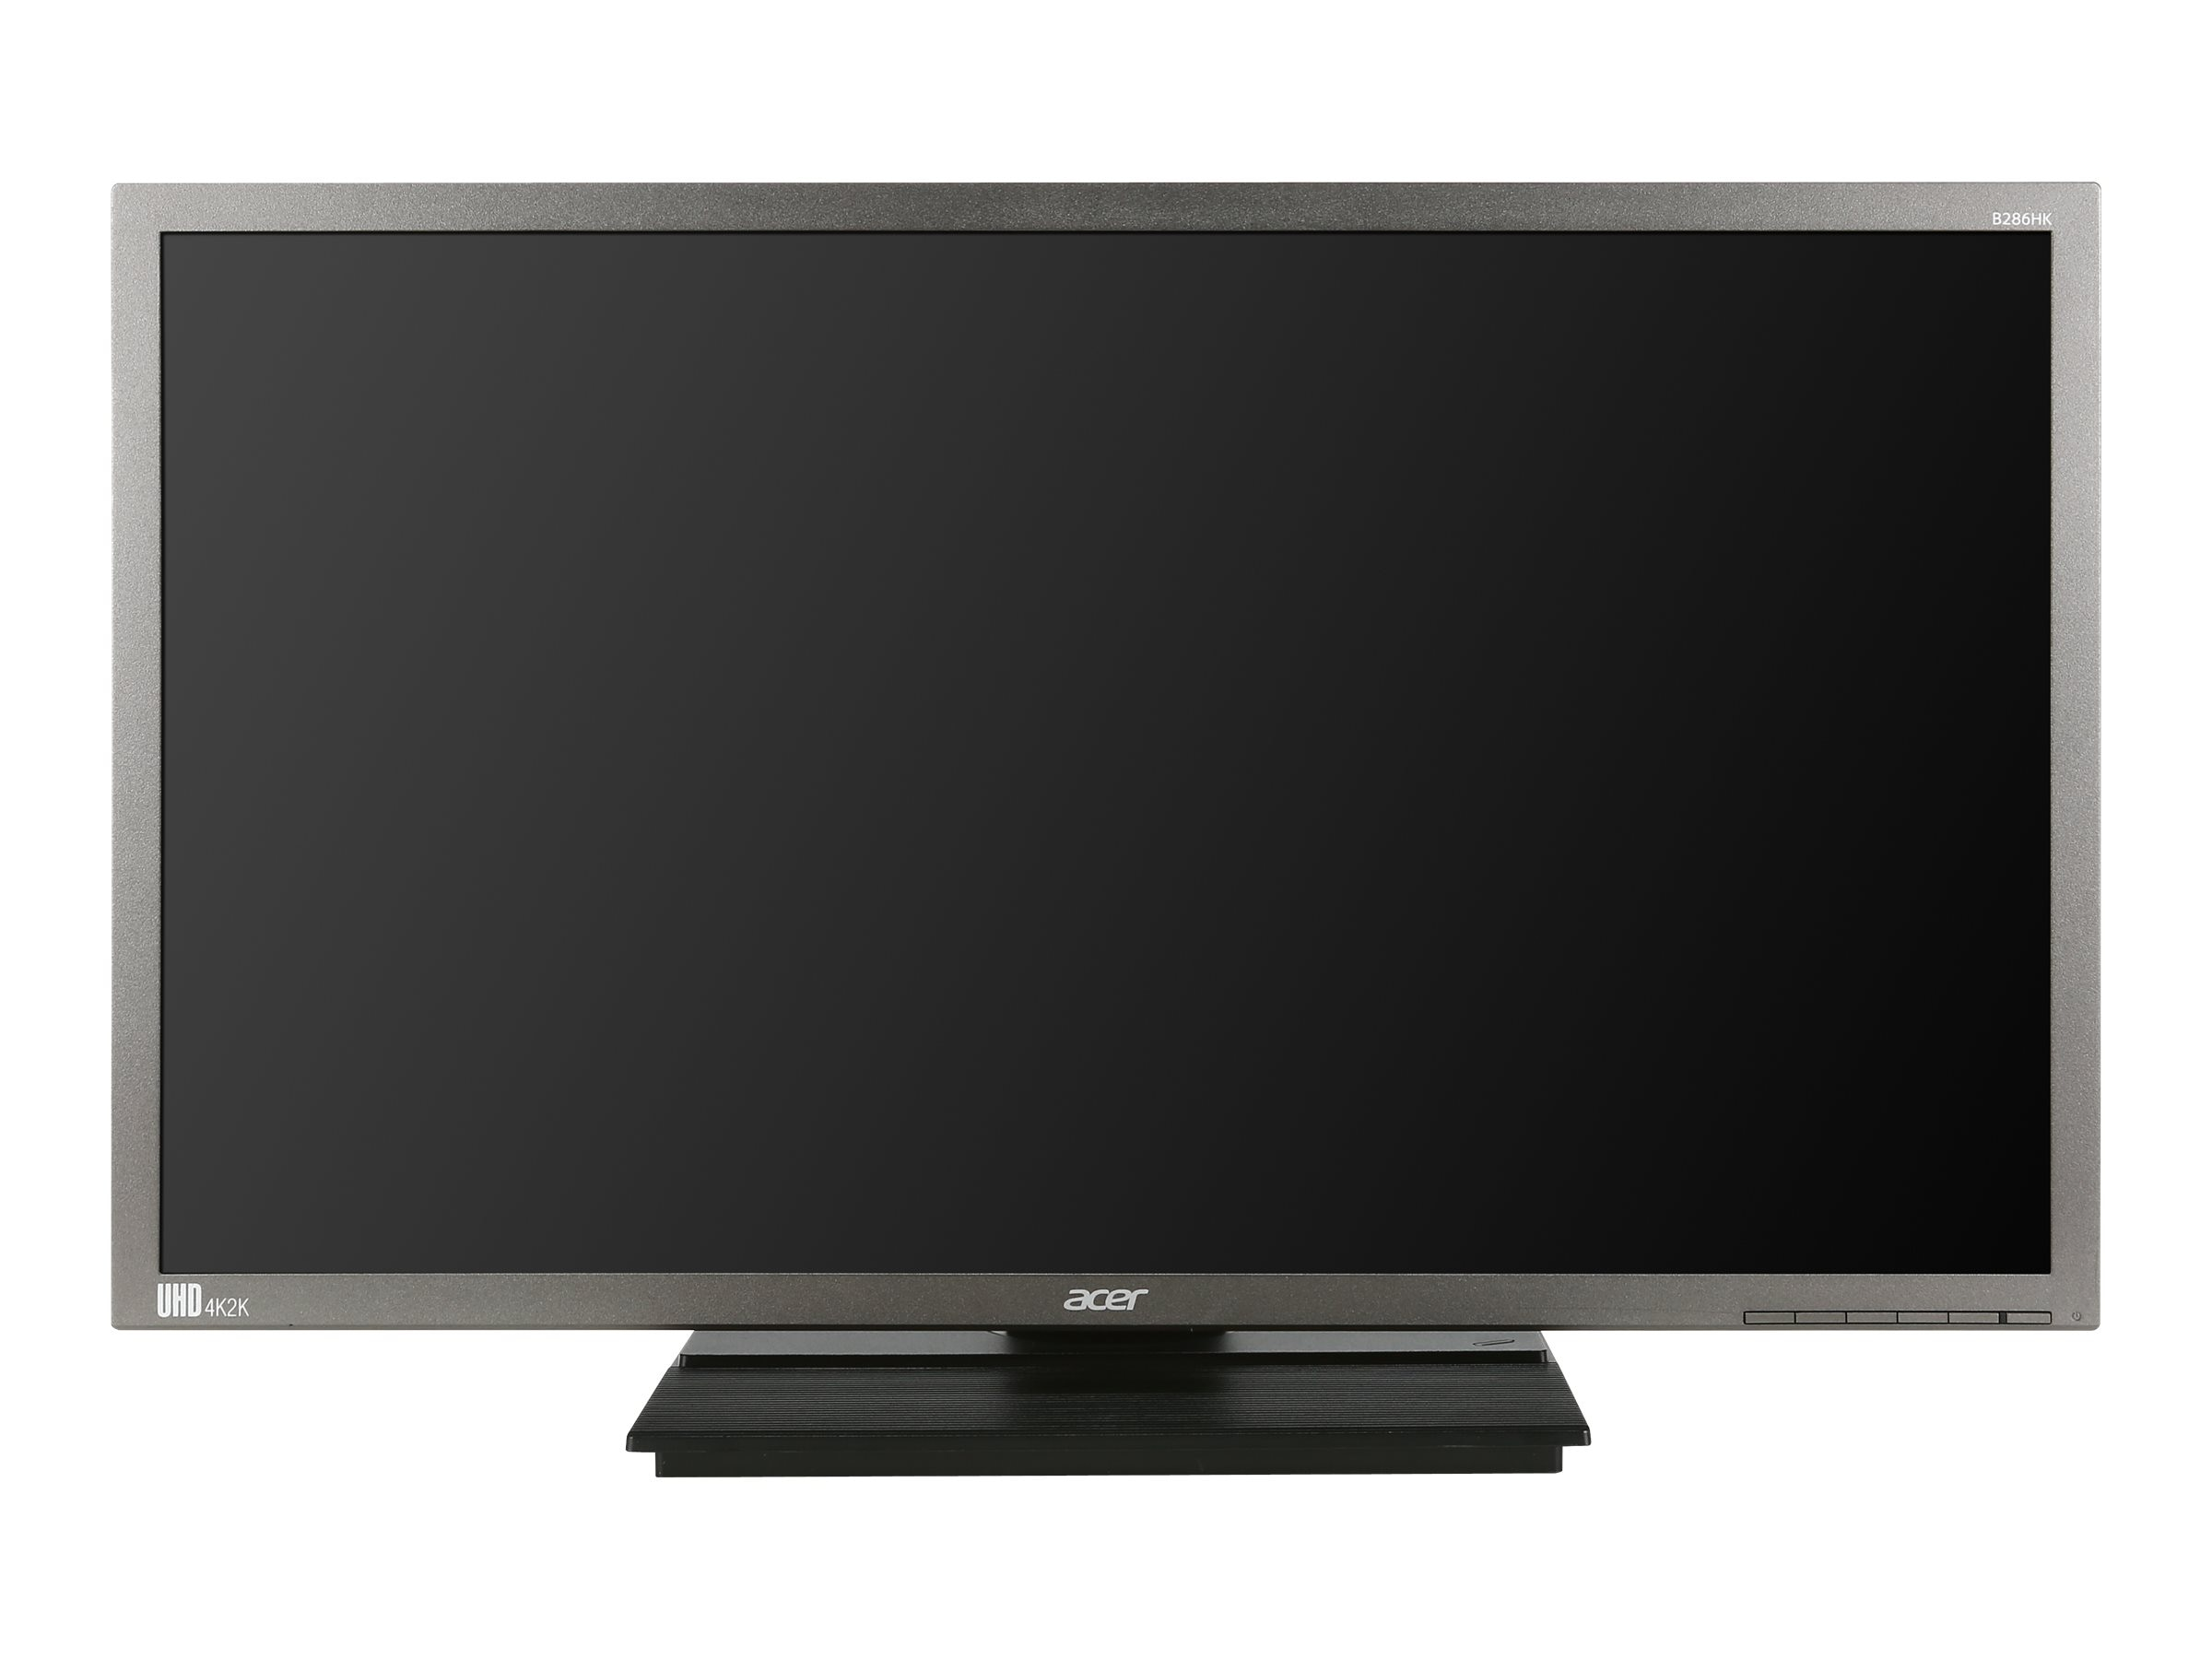 Acer 28 B286HK ymjdpprz 4K LED-LCD Display, Black, UM.PB6AA.003, 17685641, Monitors - LED-LCD